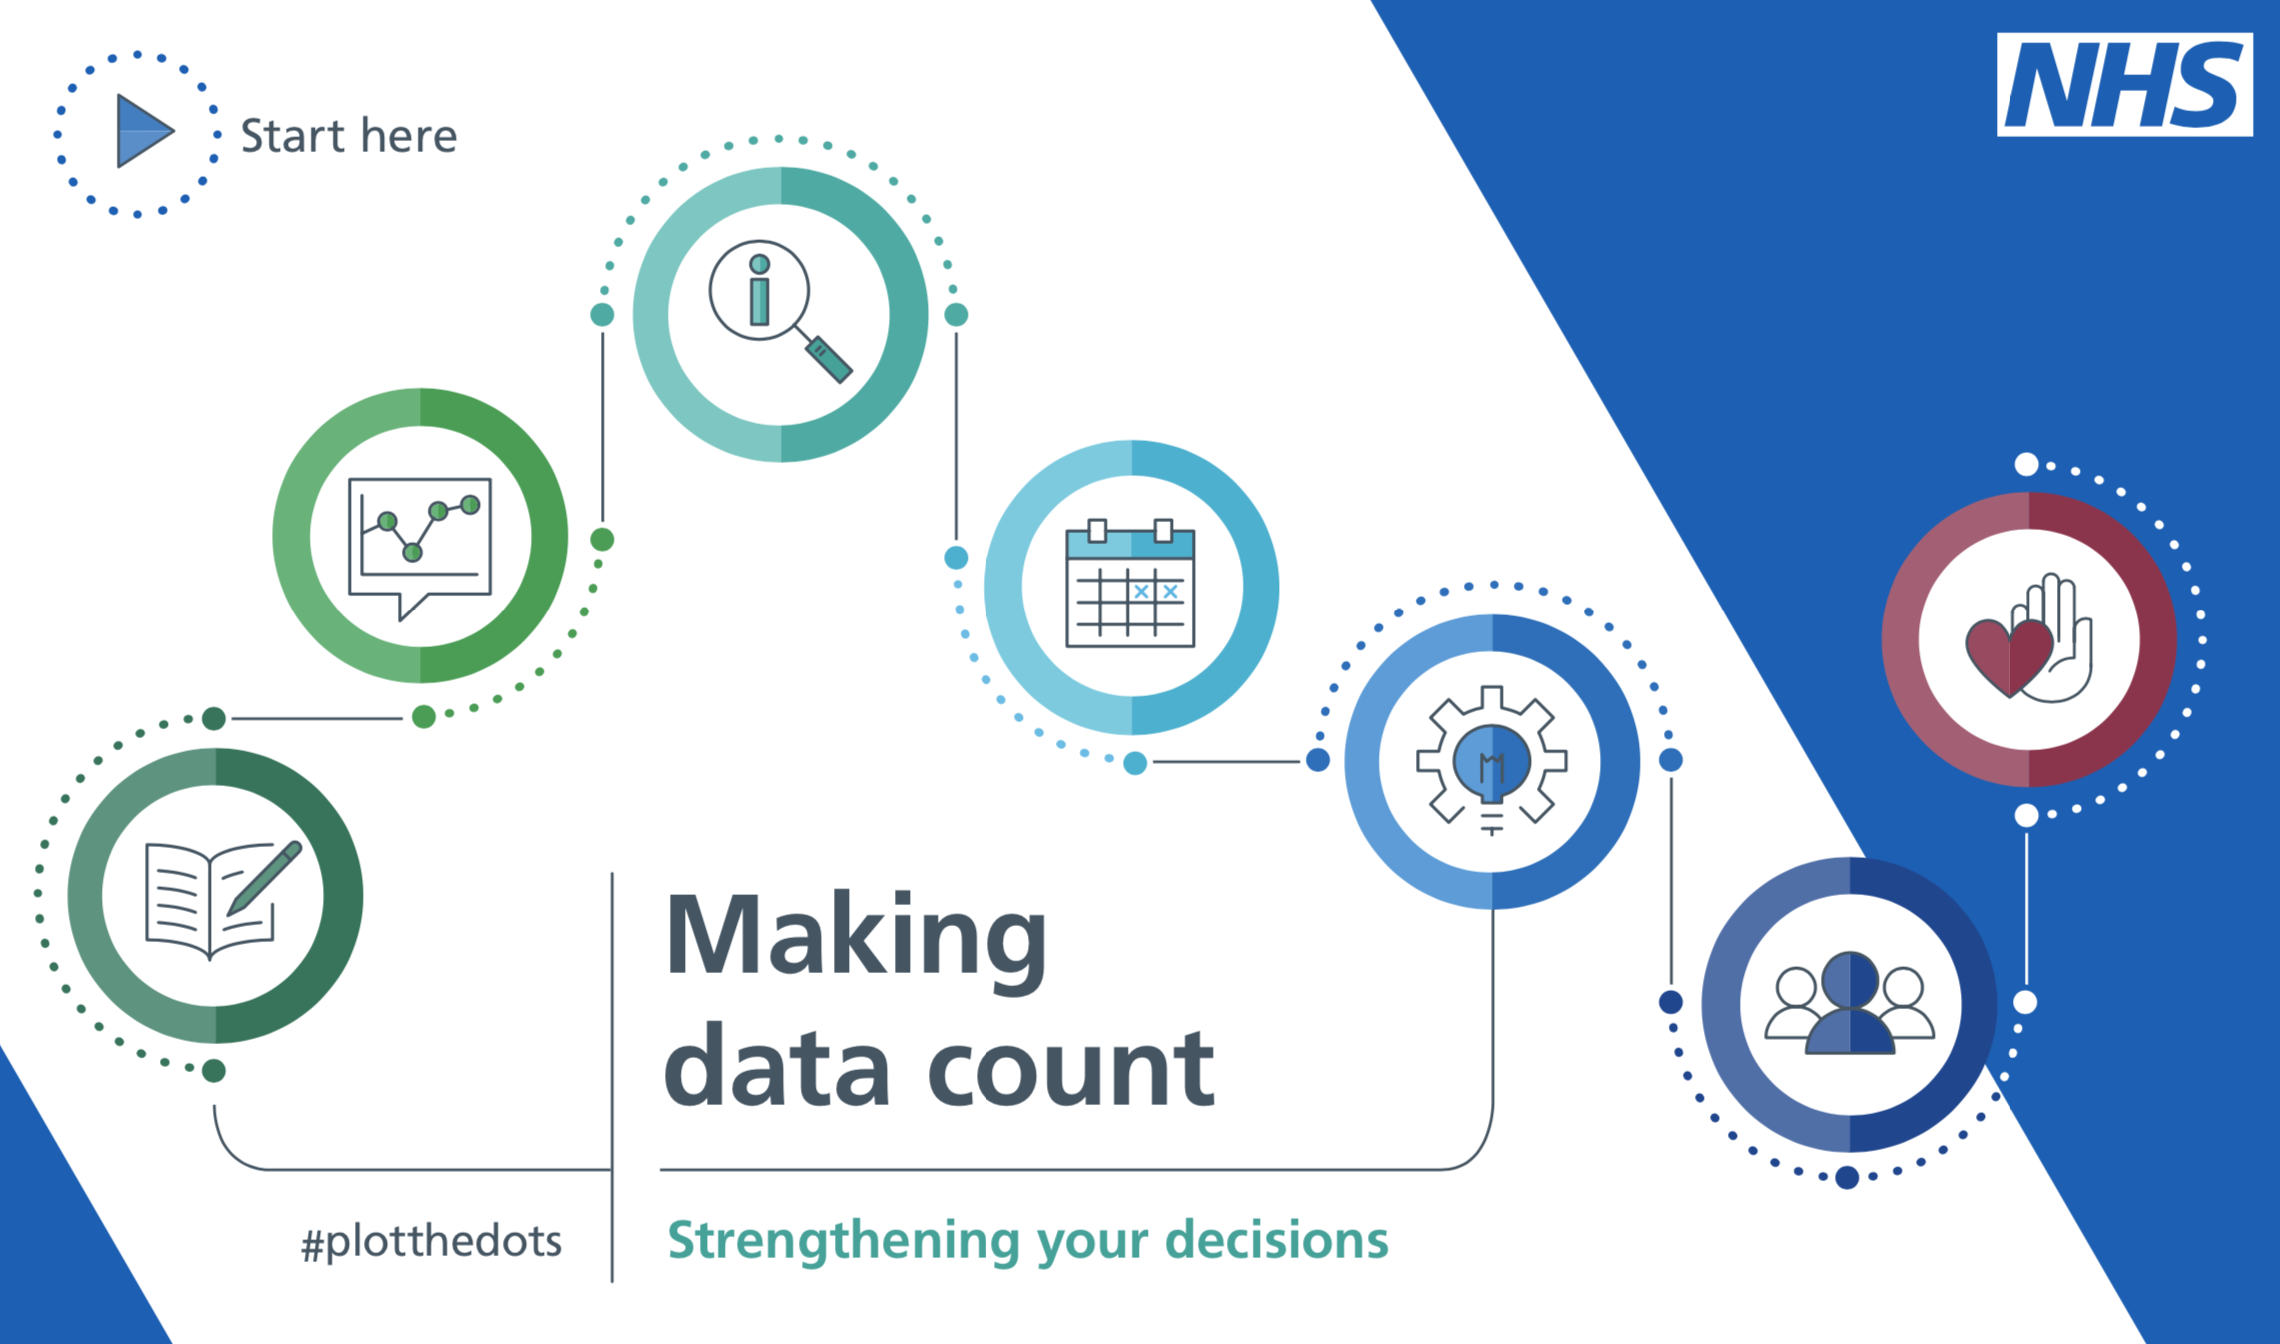 Making Data Count - Strenthening Your Decisions featured image